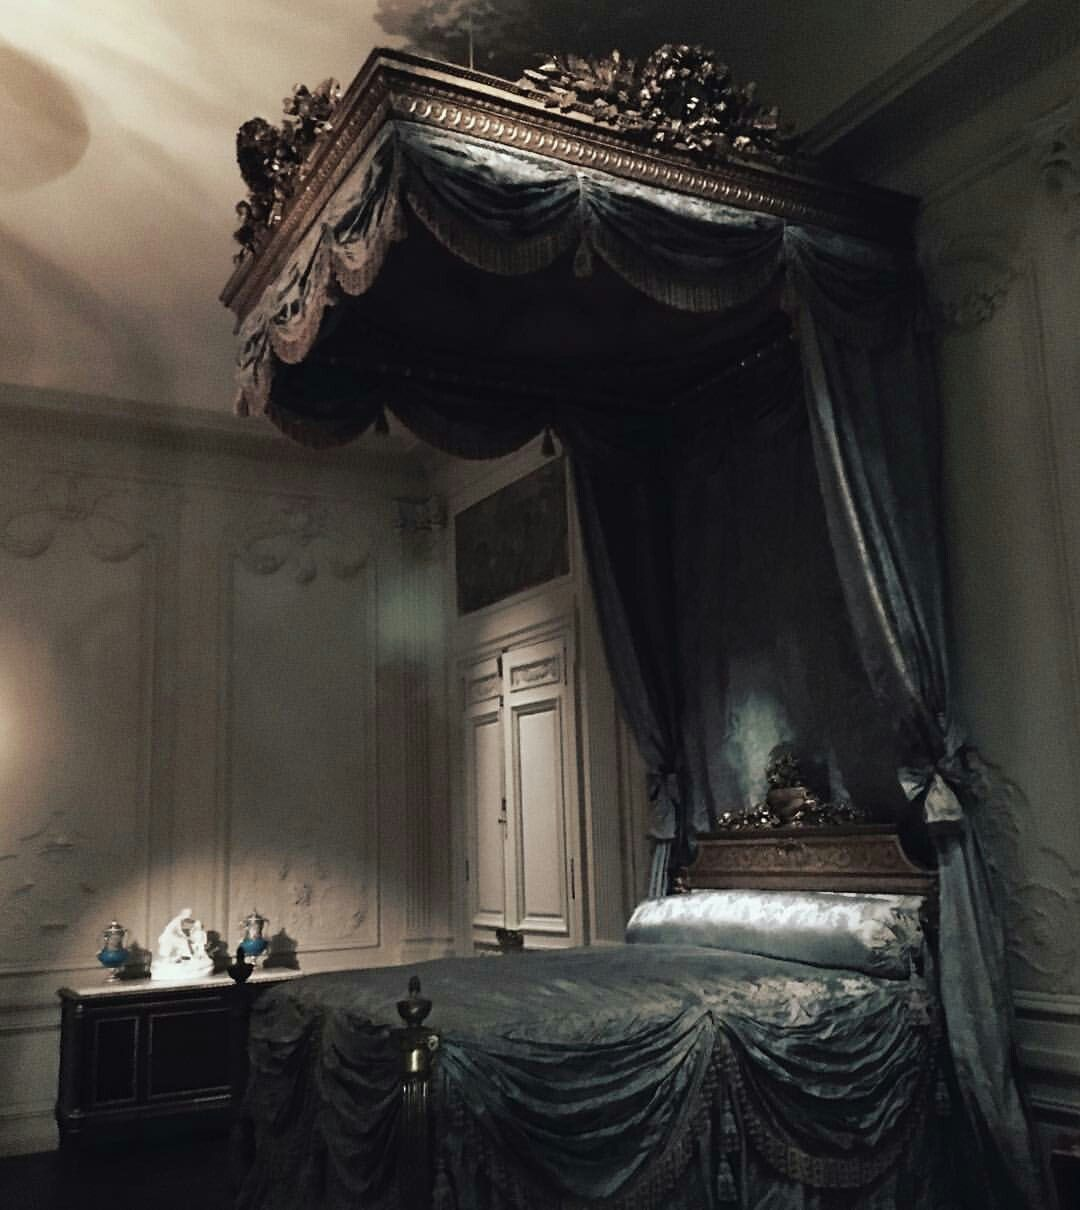 Steampunk Bedrooms Decor Ideas Steampunk Bedroom Set Steampunk Bedroom Furniture Steampunk Decorating Id Victorian Bedroom Gothic Bedroom Gothic Home Decor